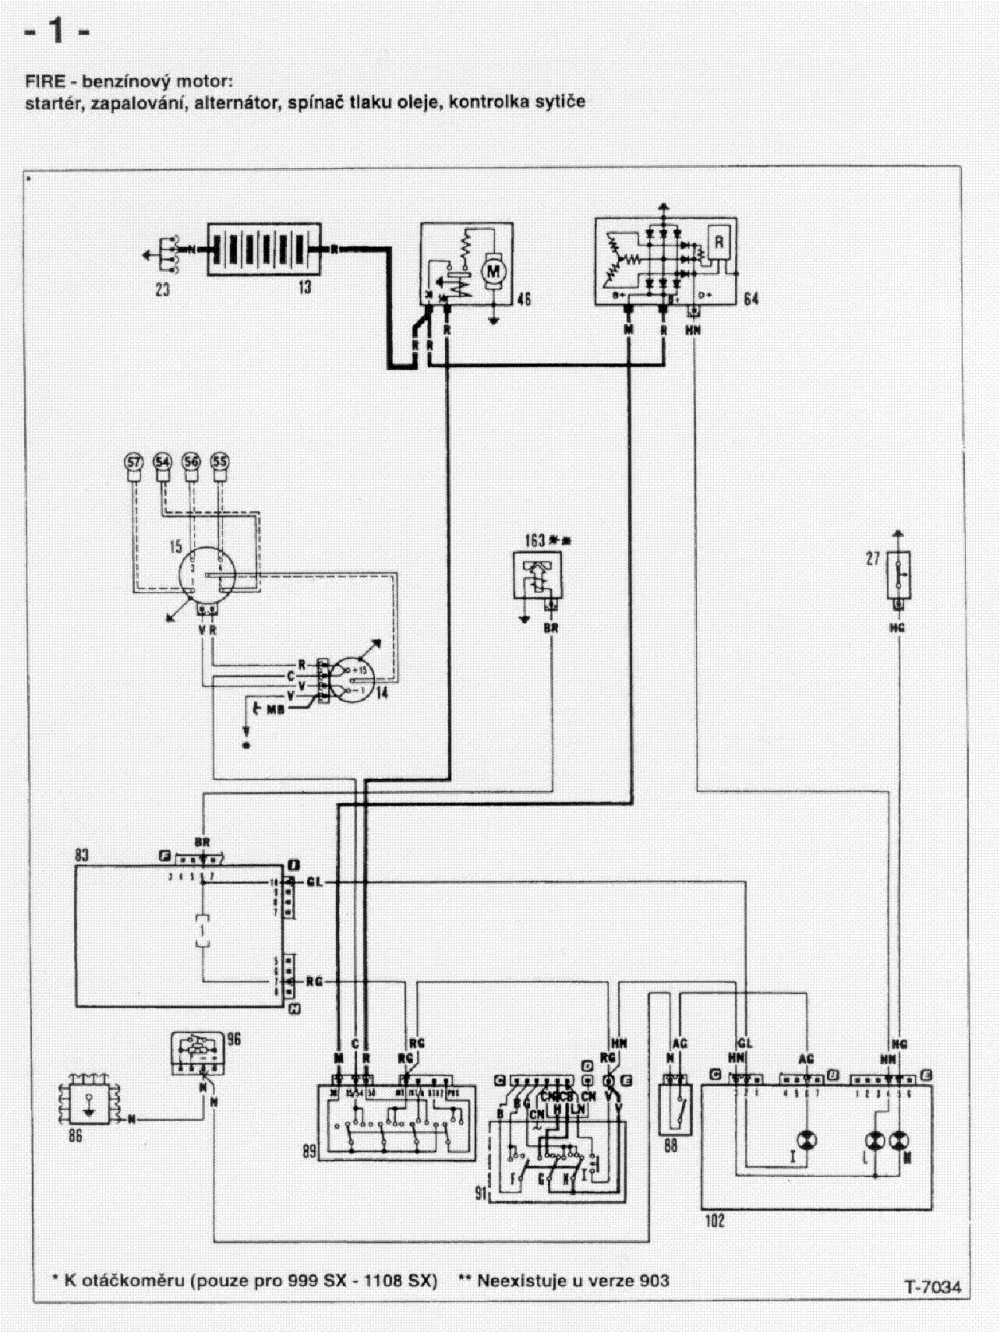 medium resolution of fiat uno wiring diagram service manual download schematics eeprom rh elektrotanya com fiat grande punto wiring